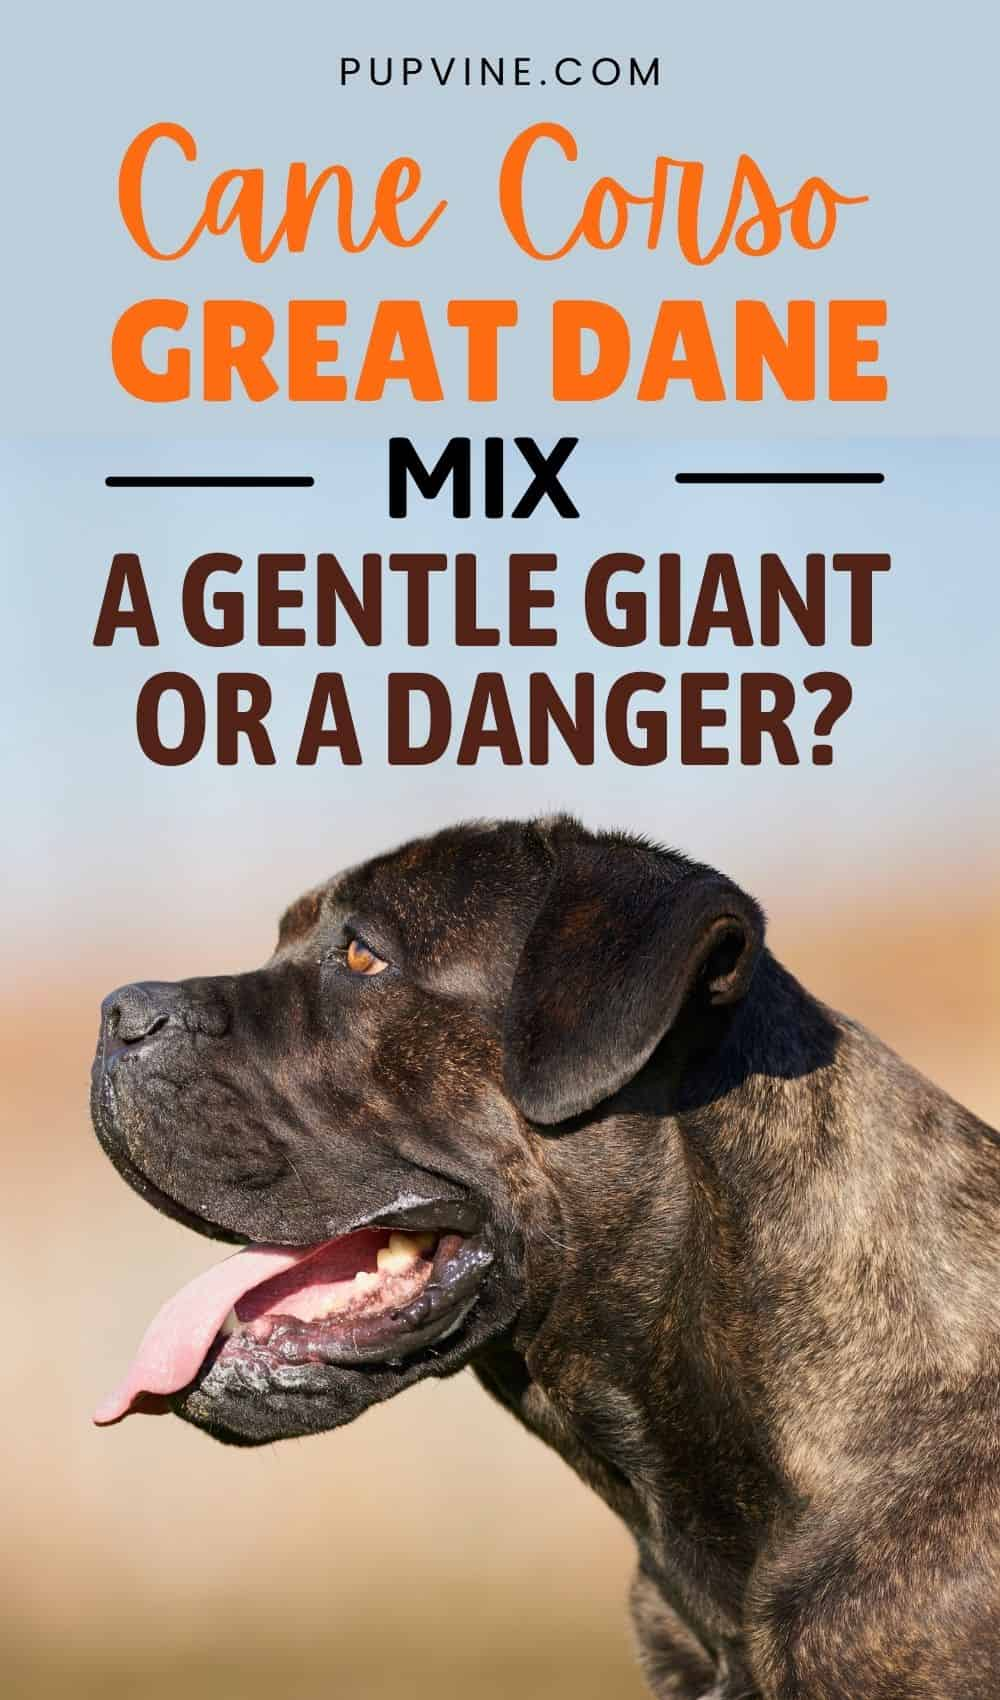 Cane Corso Great Dane Mix – A Gentle Giant Or A Danger